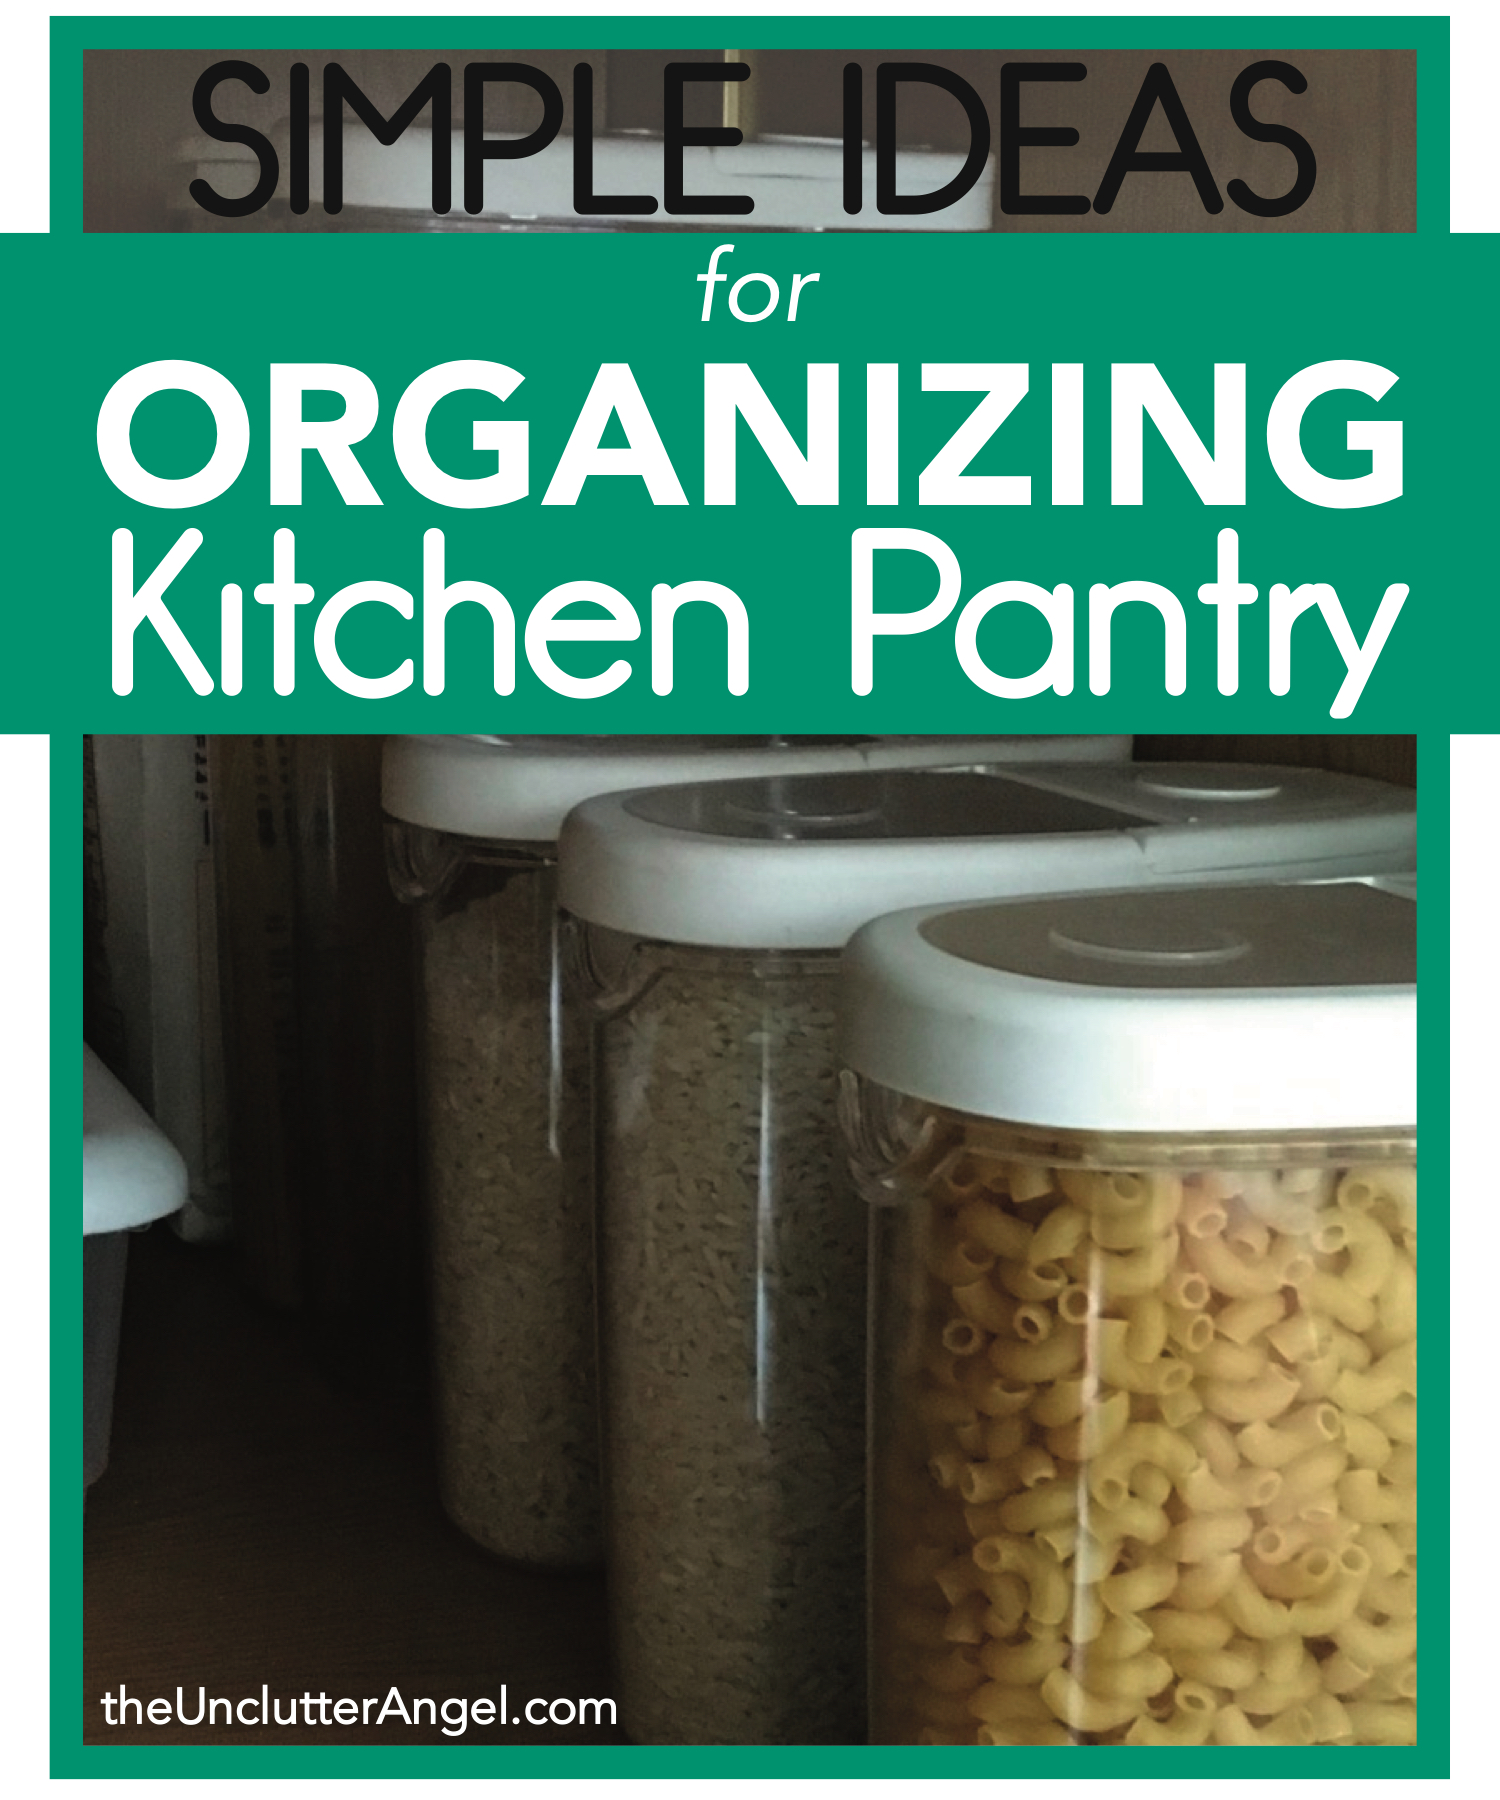 Simple Ideas for Organizing the Kitchen Pantry - The Unclutter Angel